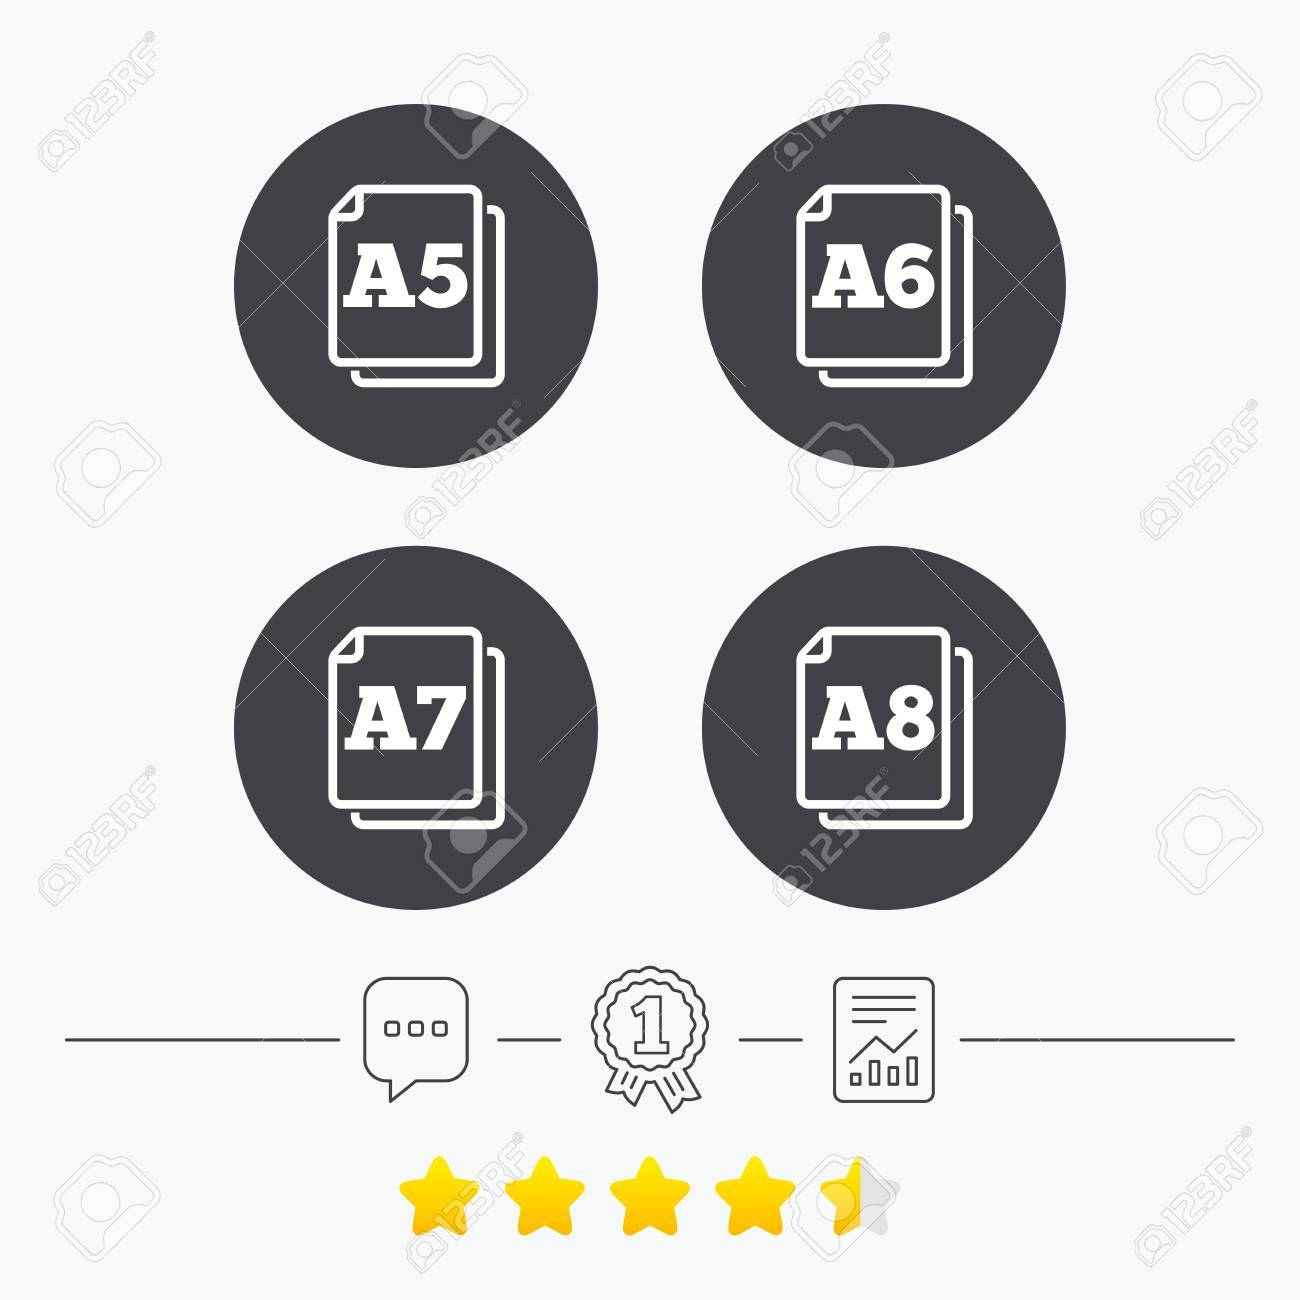 Paper size standard icons  Document symbols  A5, A6, A7 and A8